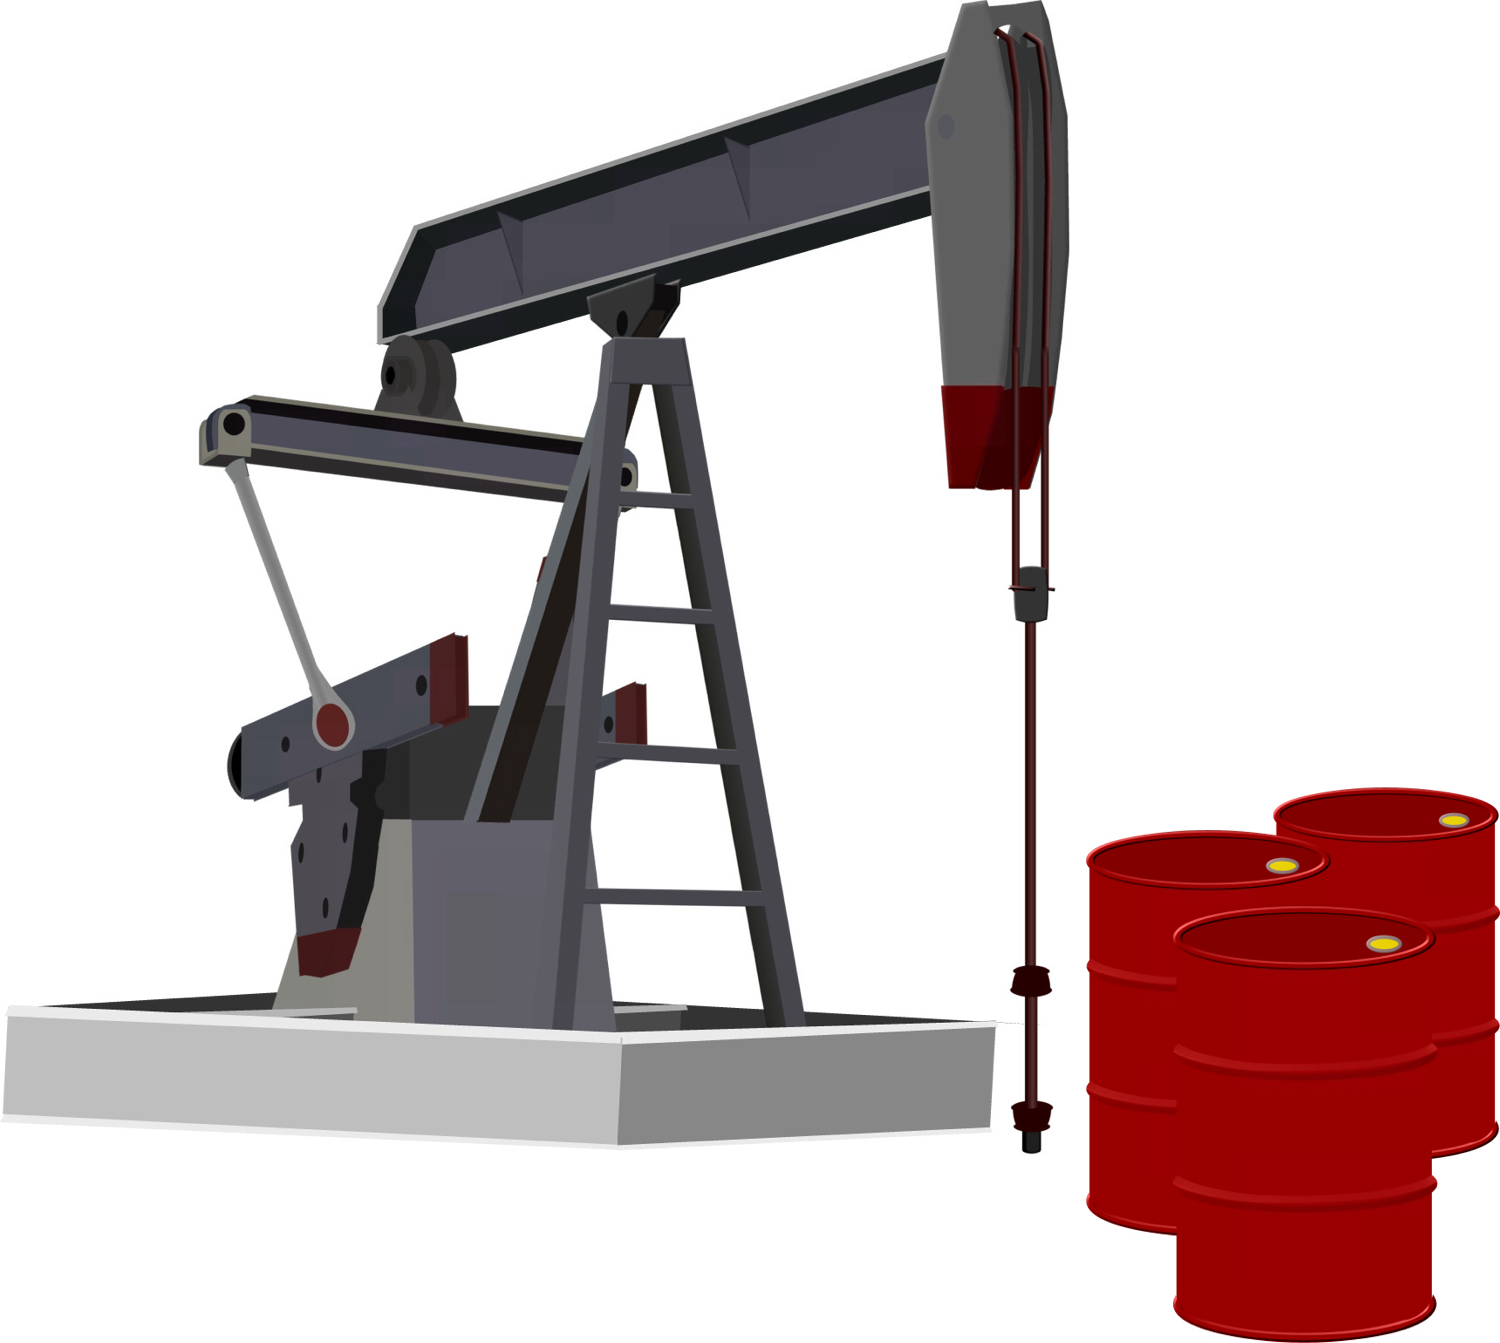 Oil Rig clipart oil well #6